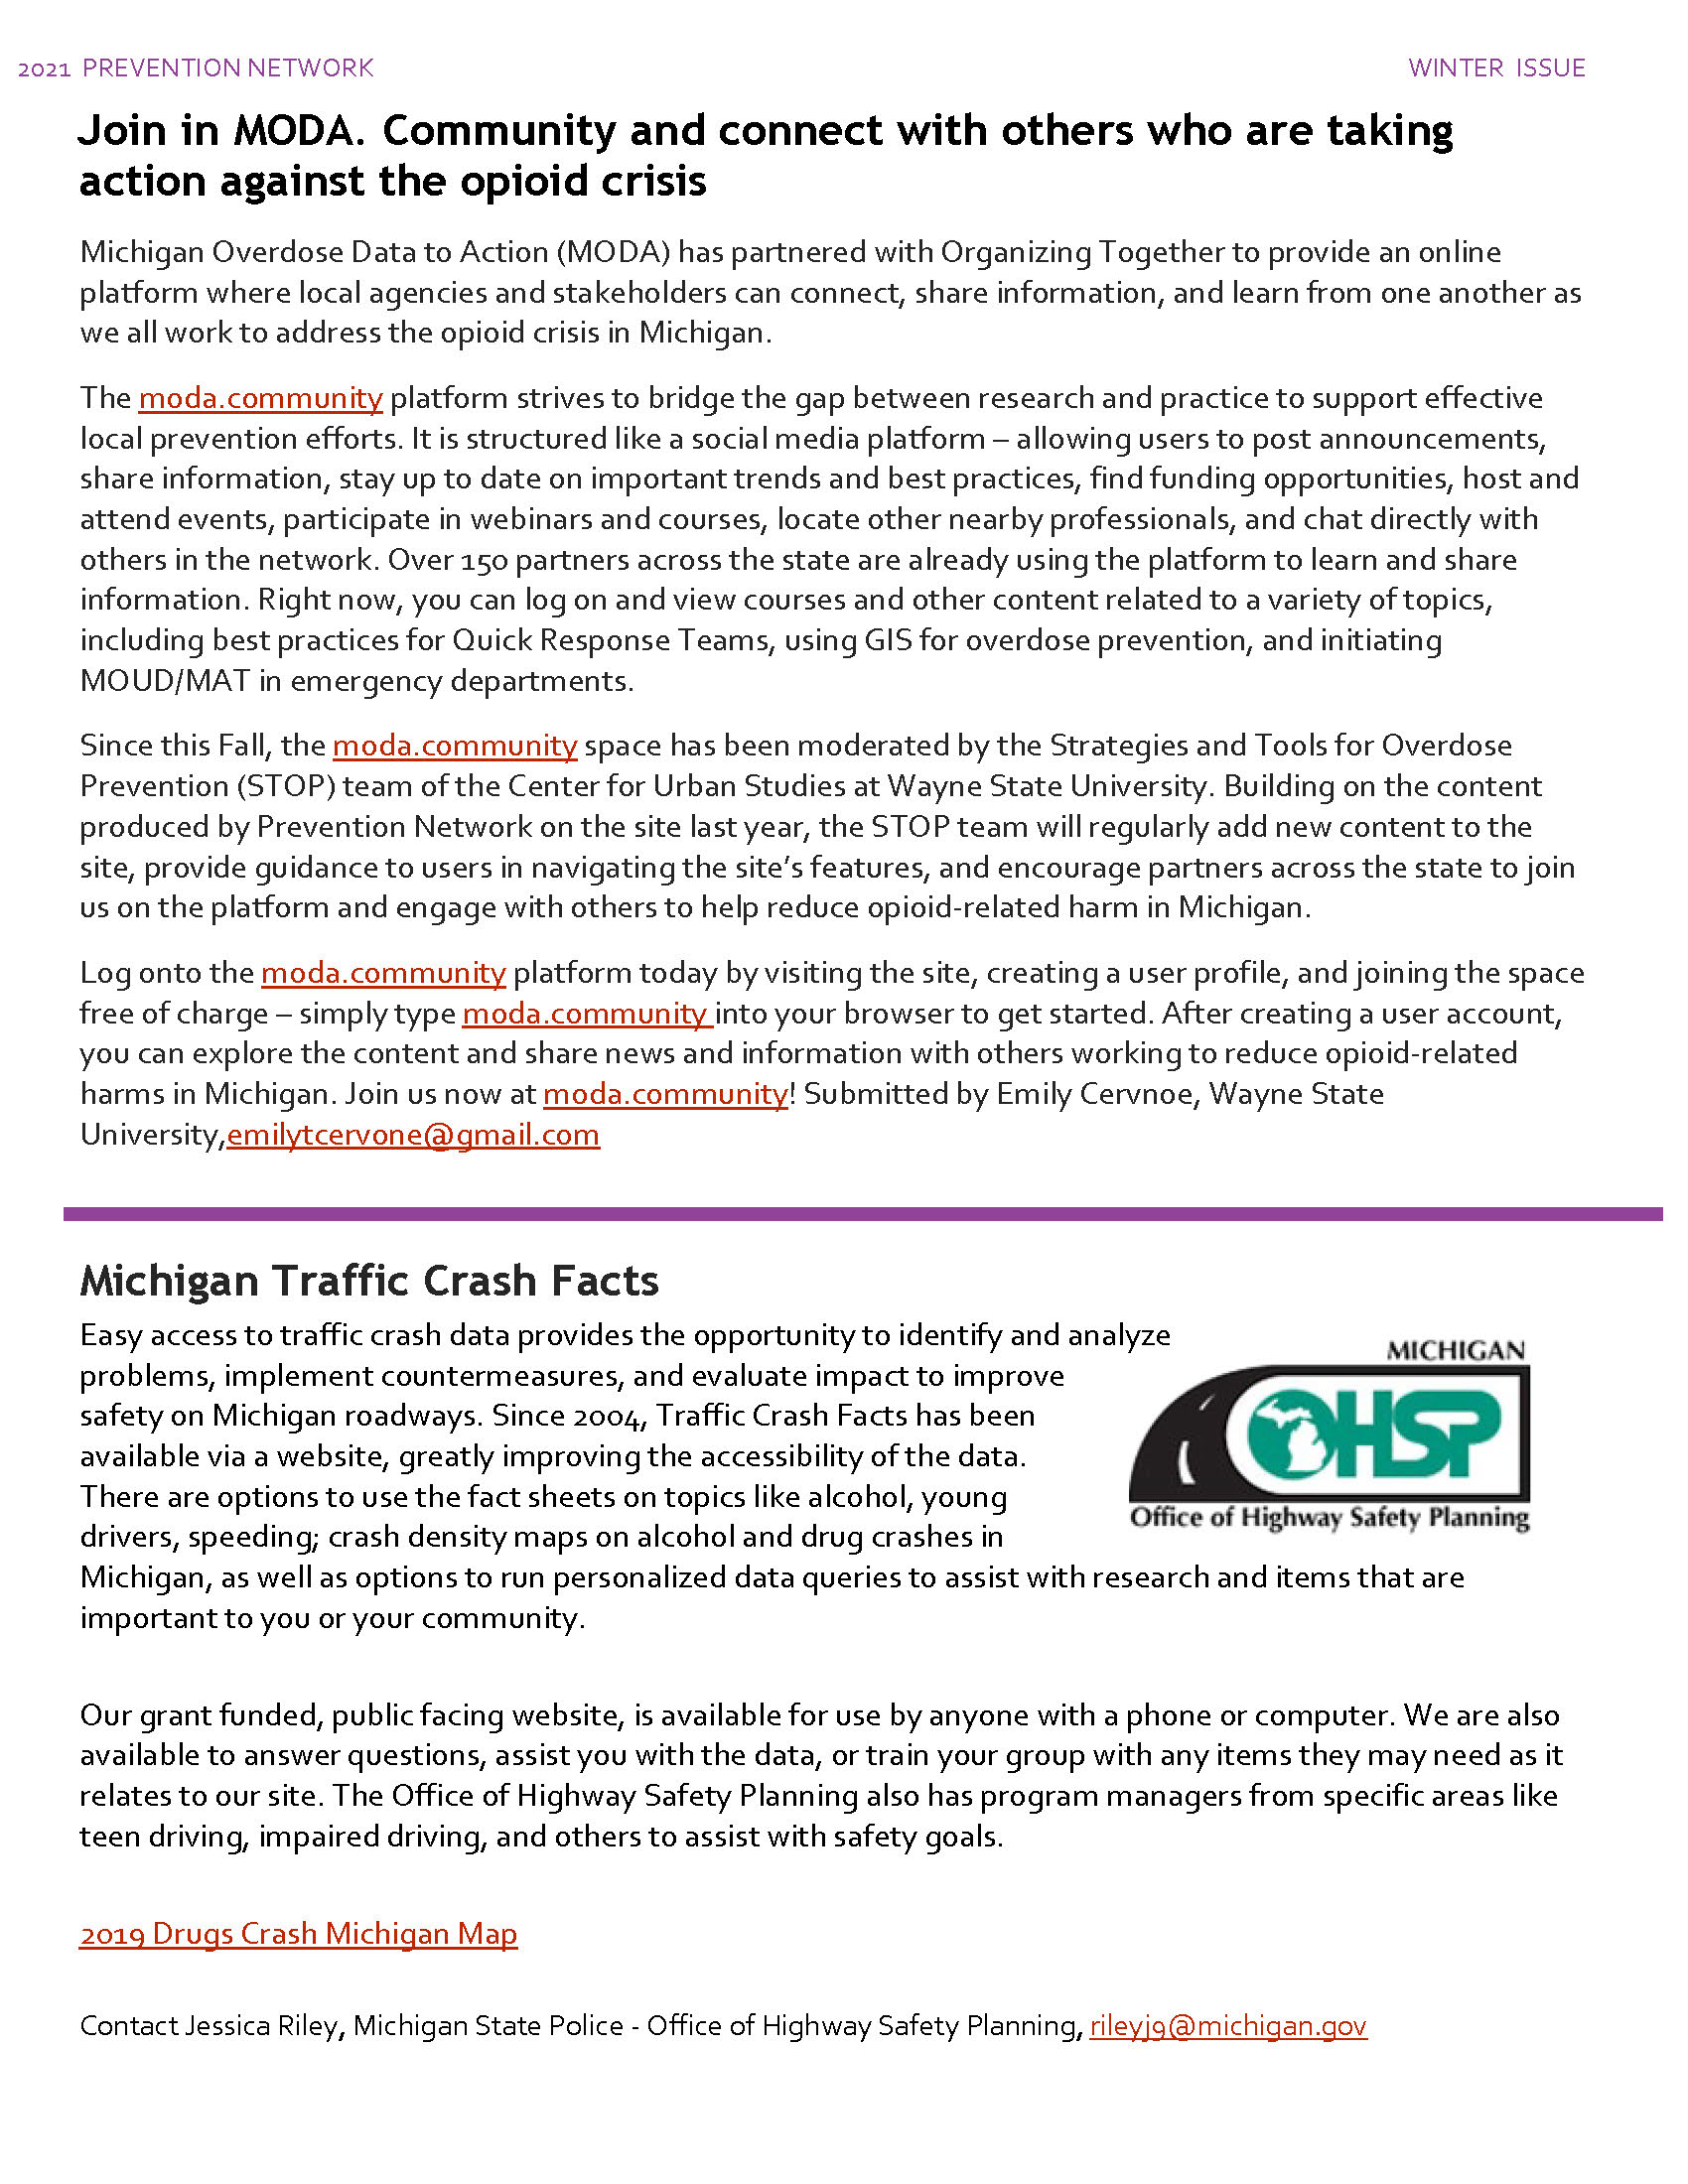 Moda. Community & MI Traffic Crash Facts